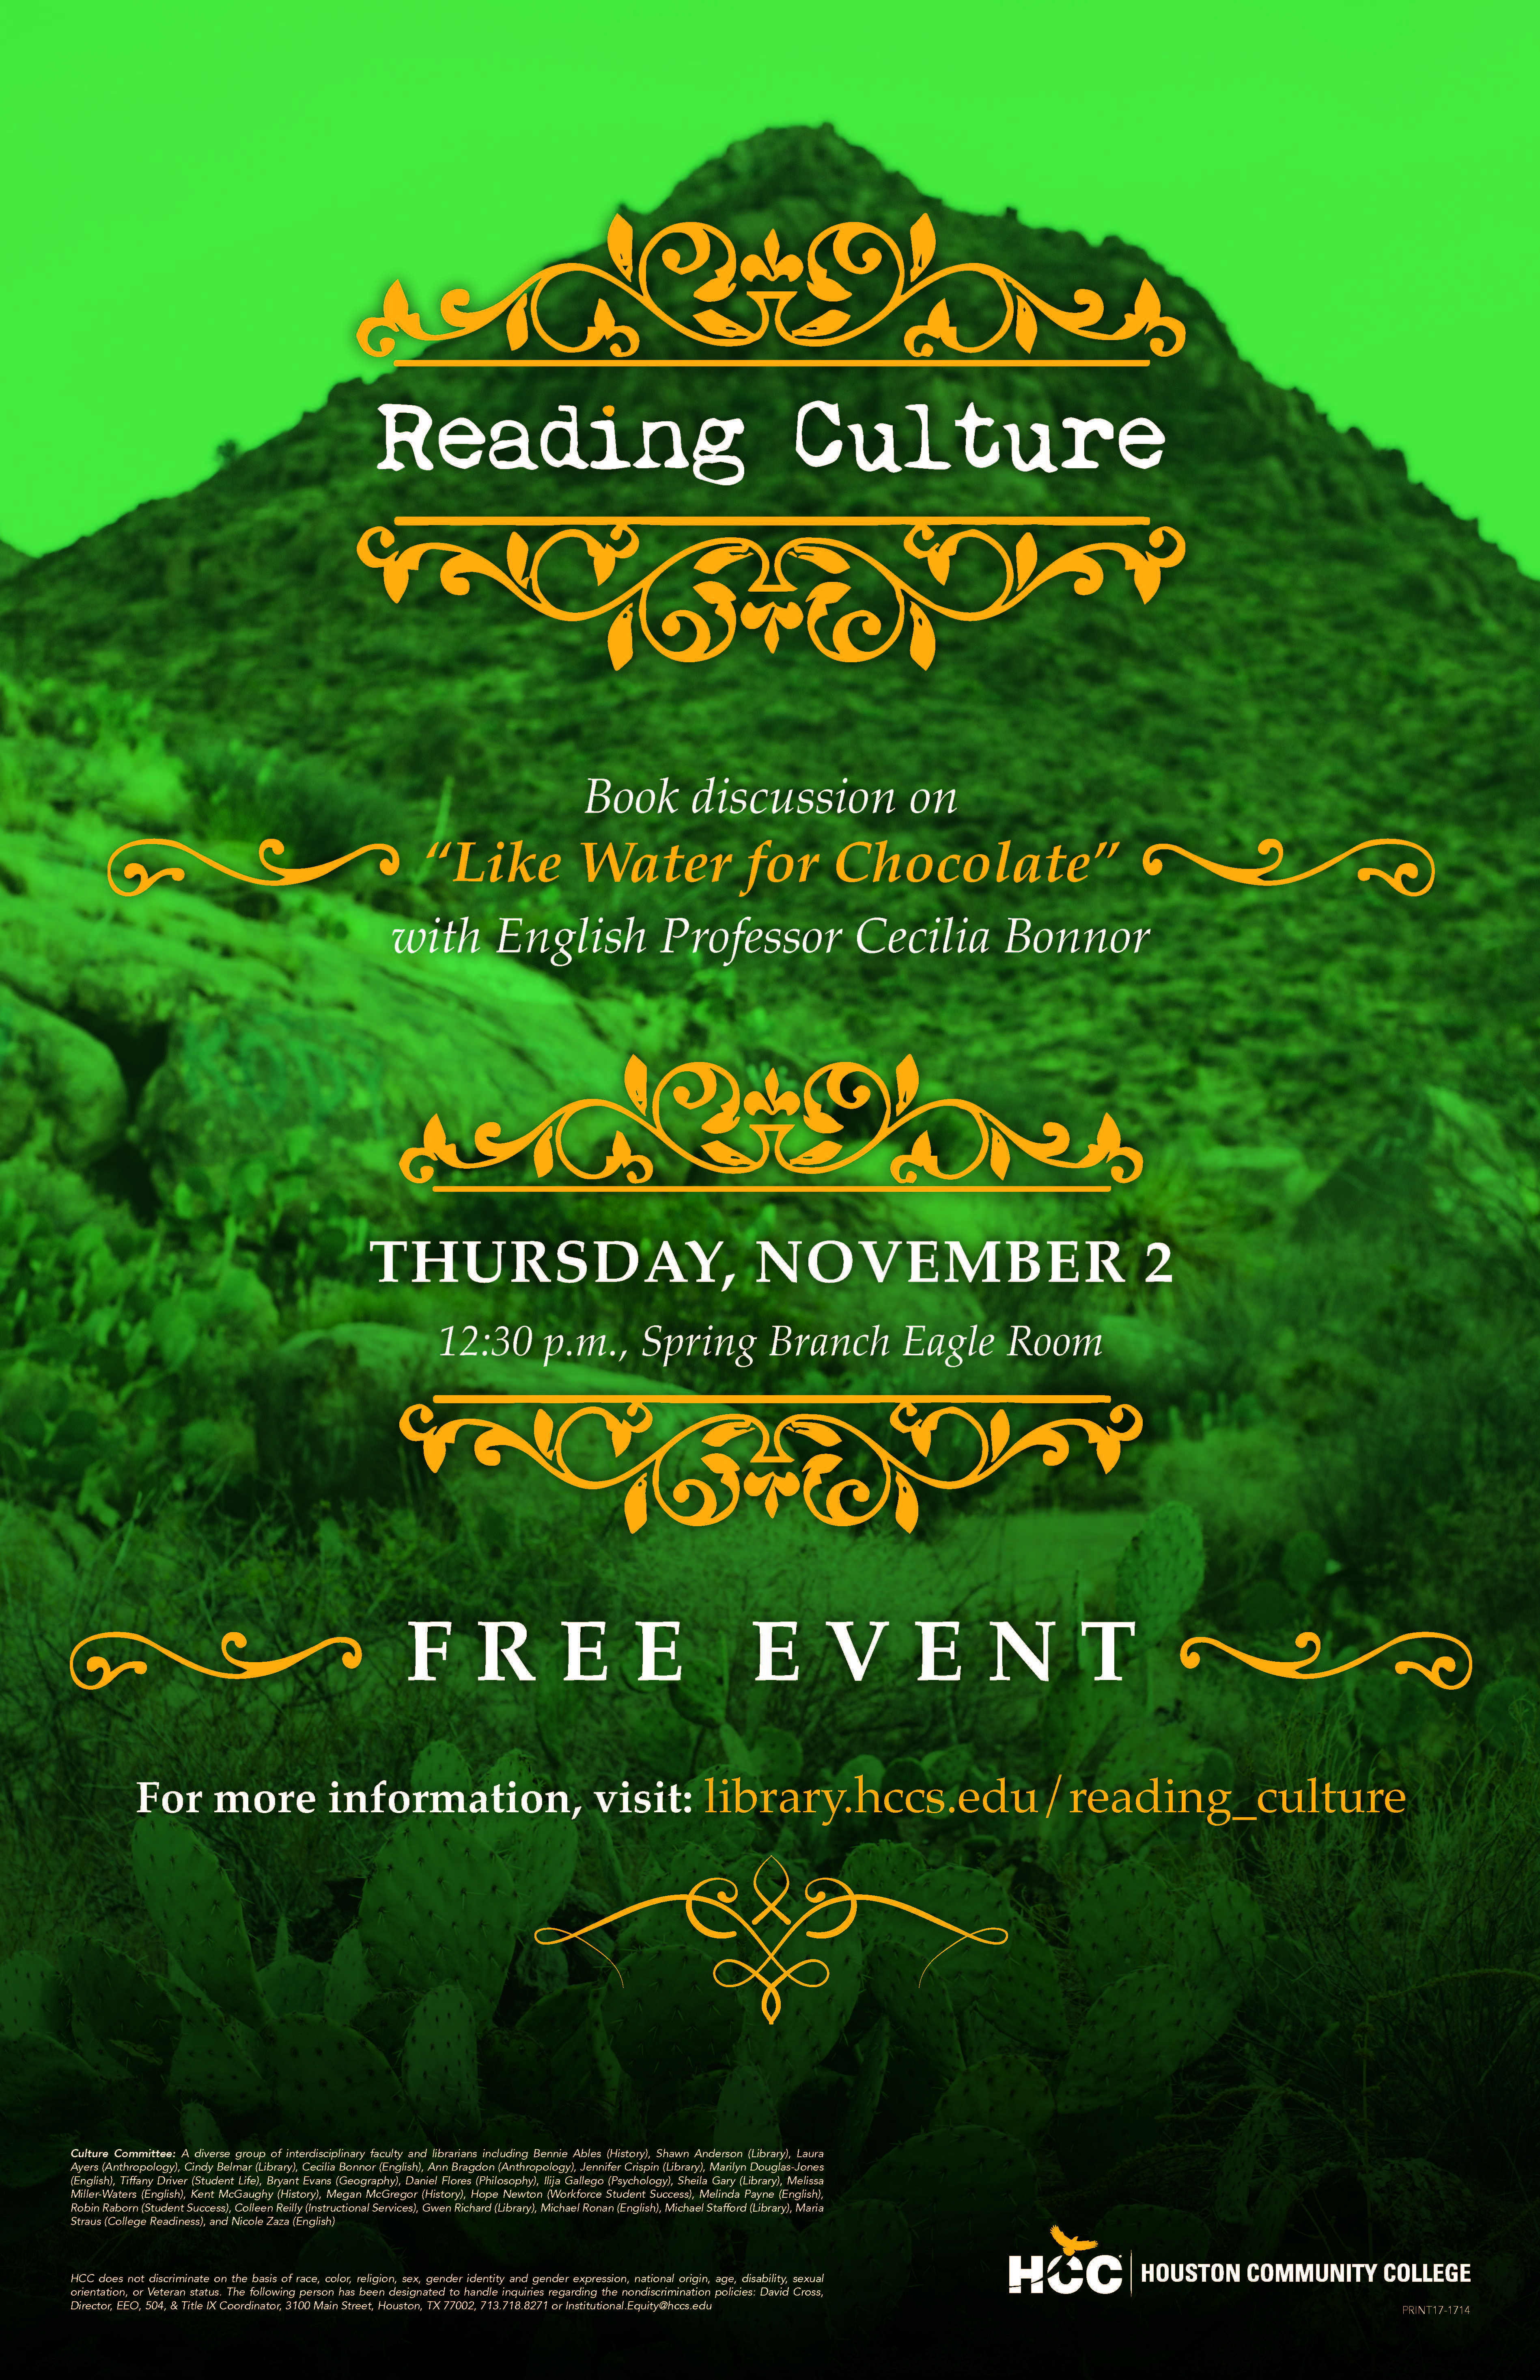 Reading Culture Nov 2 Event